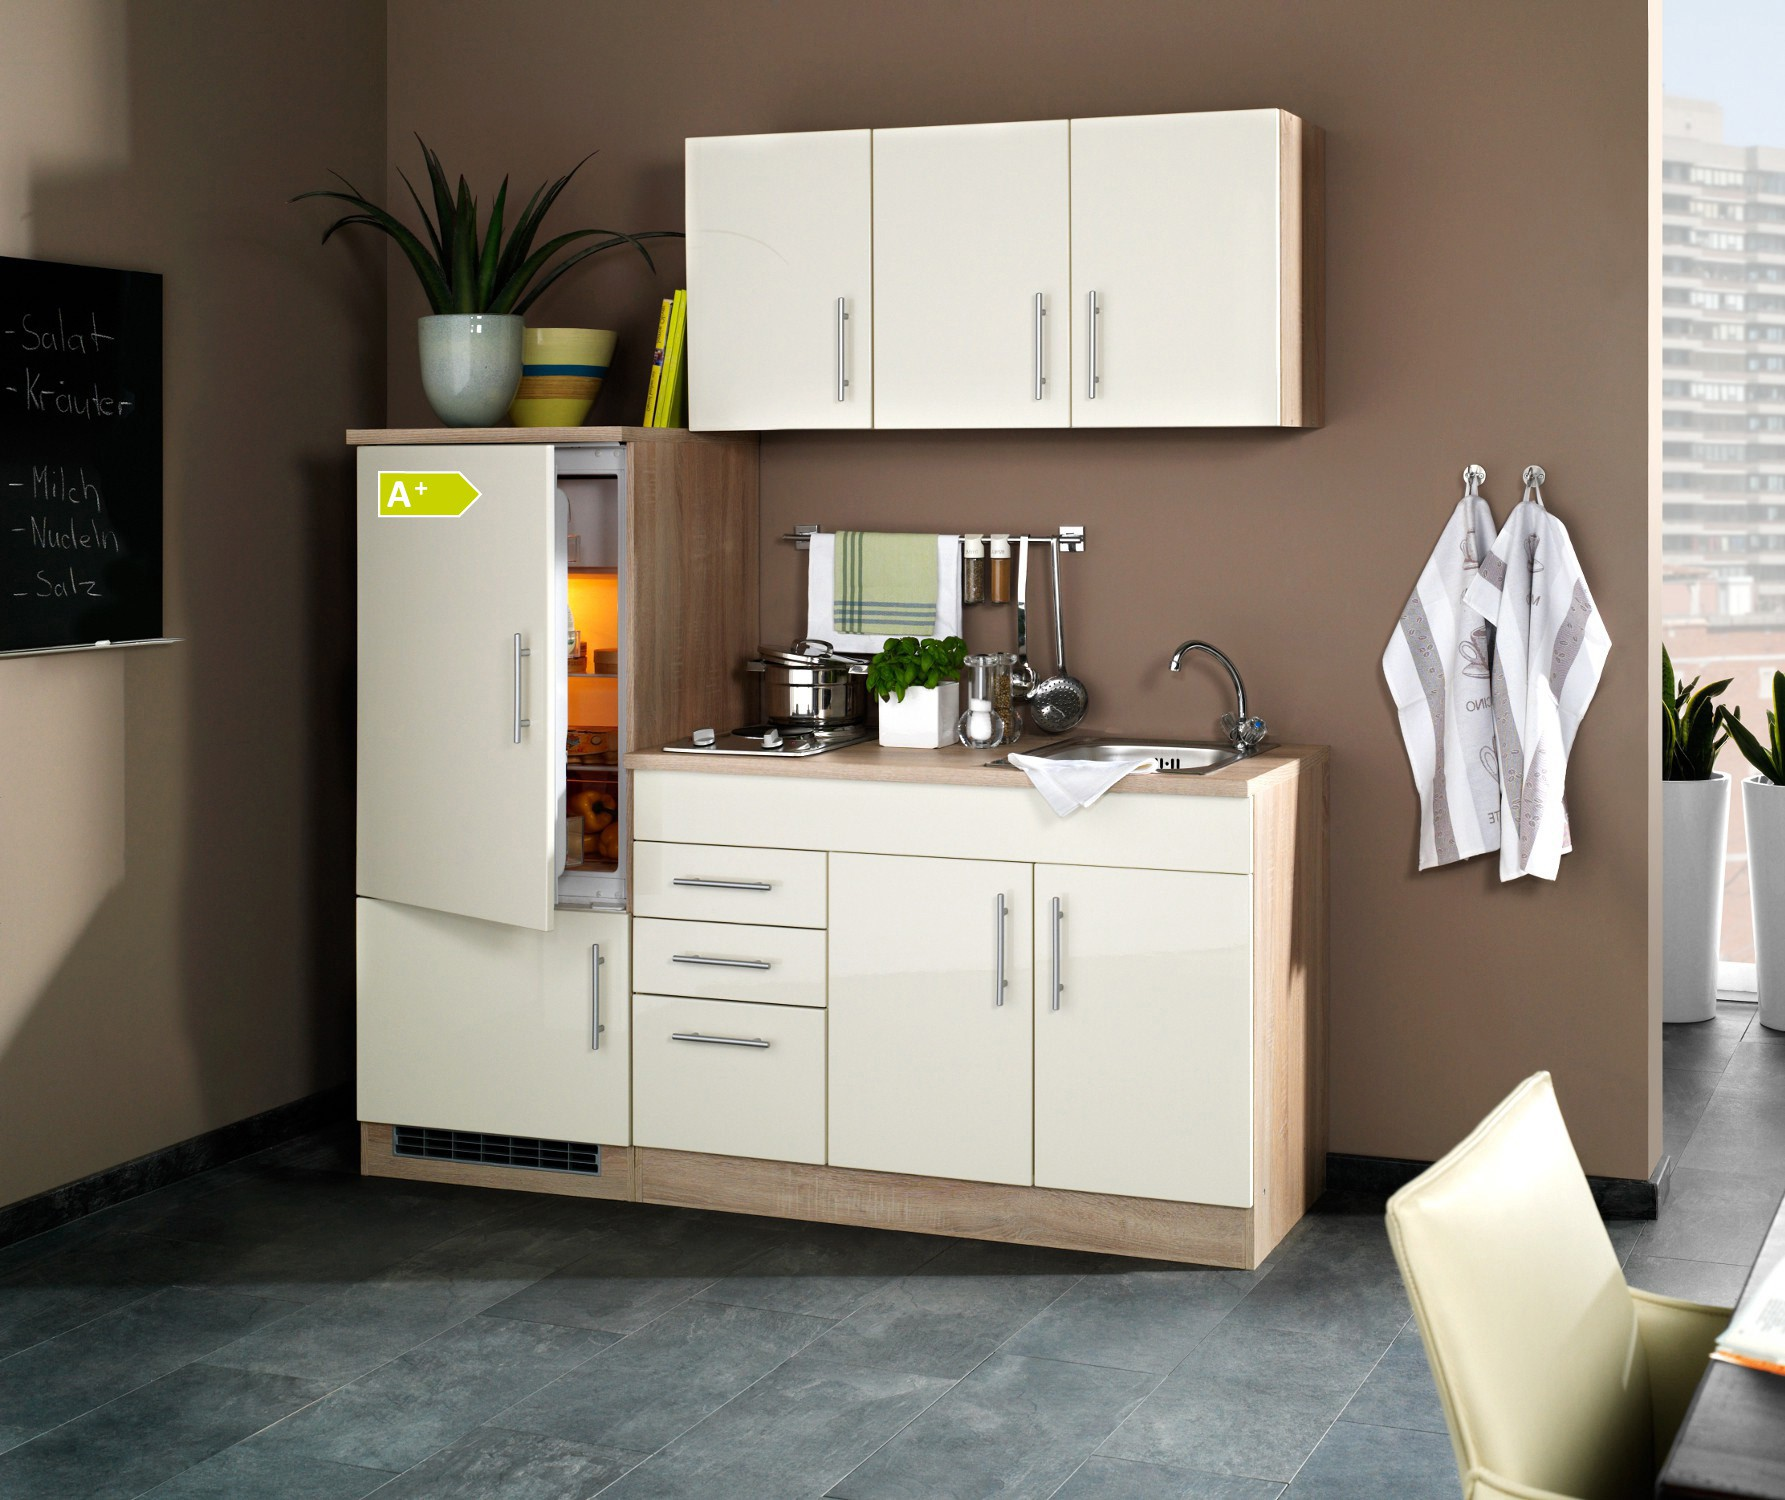 singlek che berlin mit k hlschrank breite 180 cm hochglanz creme eiche sonoma k che. Black Bedroom Furniture Sets. Home Design Ideas